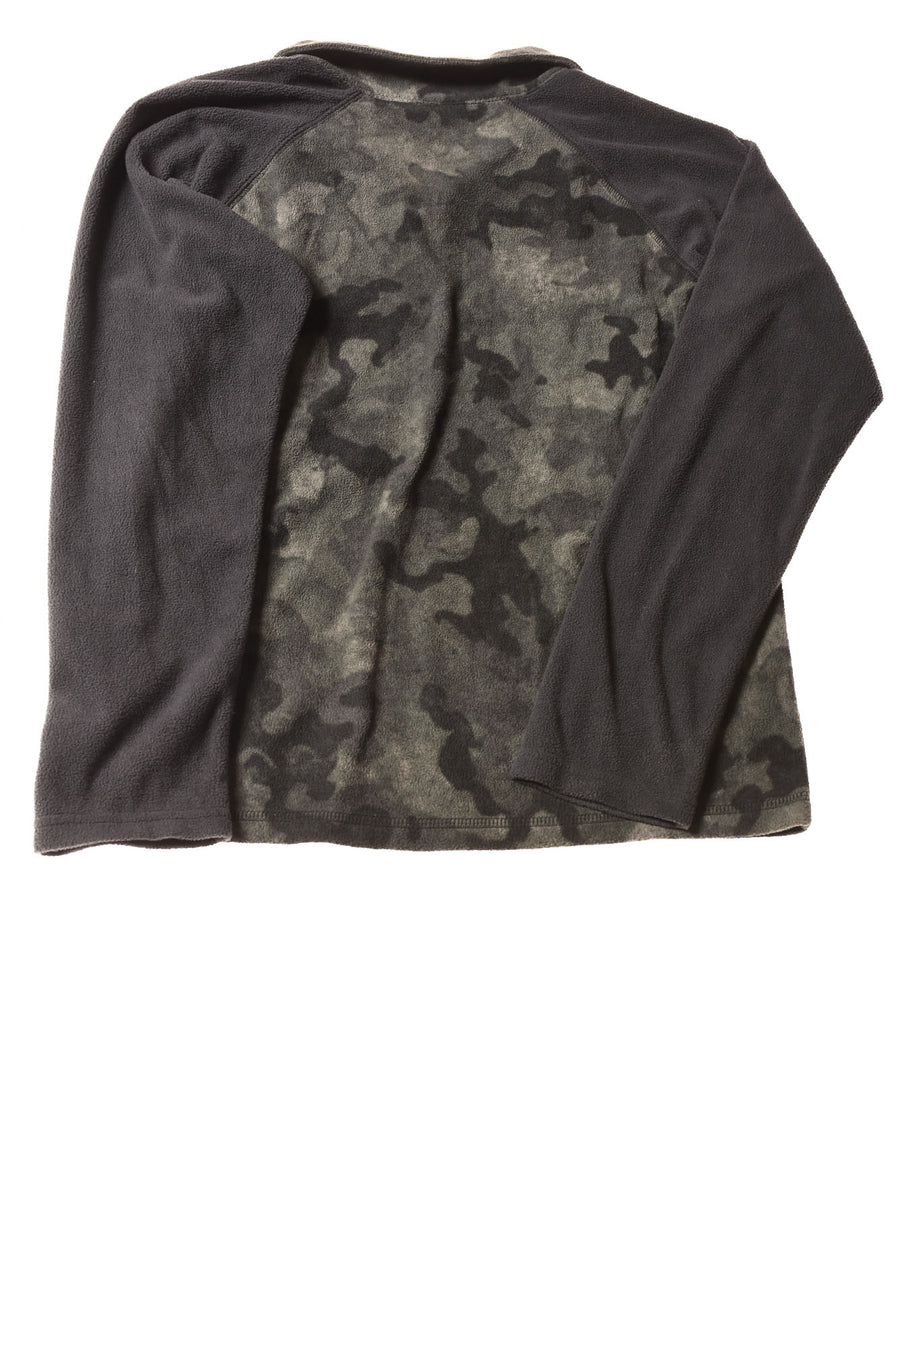 USED Columbia Boy's Shirt Medium Gray / Camo